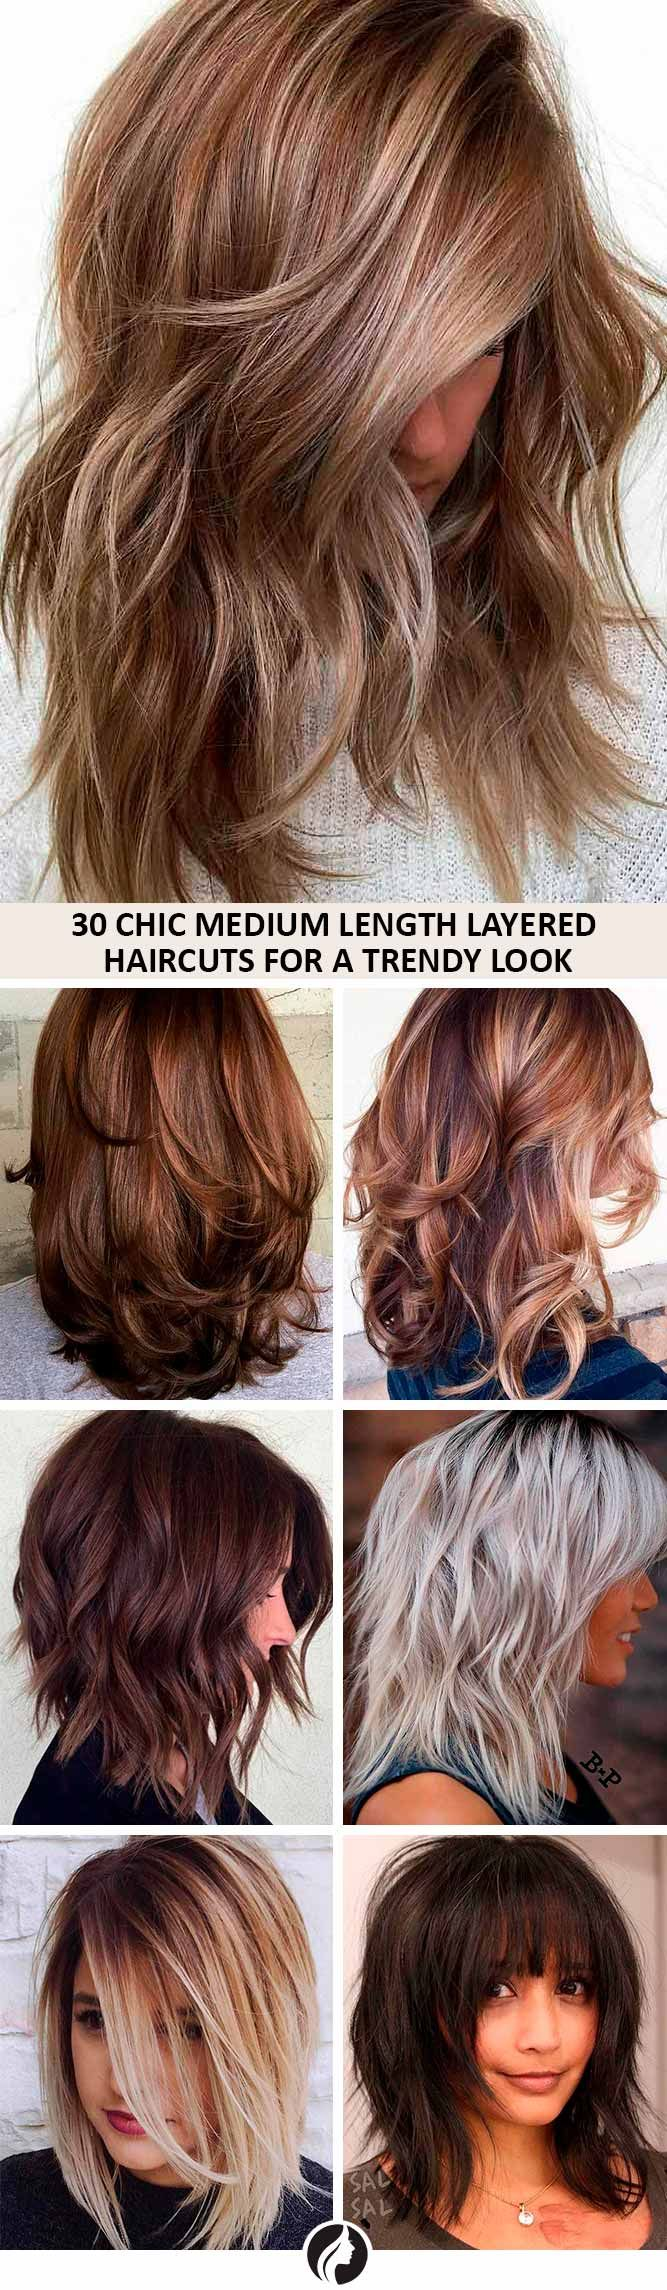 Todays Hairstyles For Medium Length Hair hair color trend